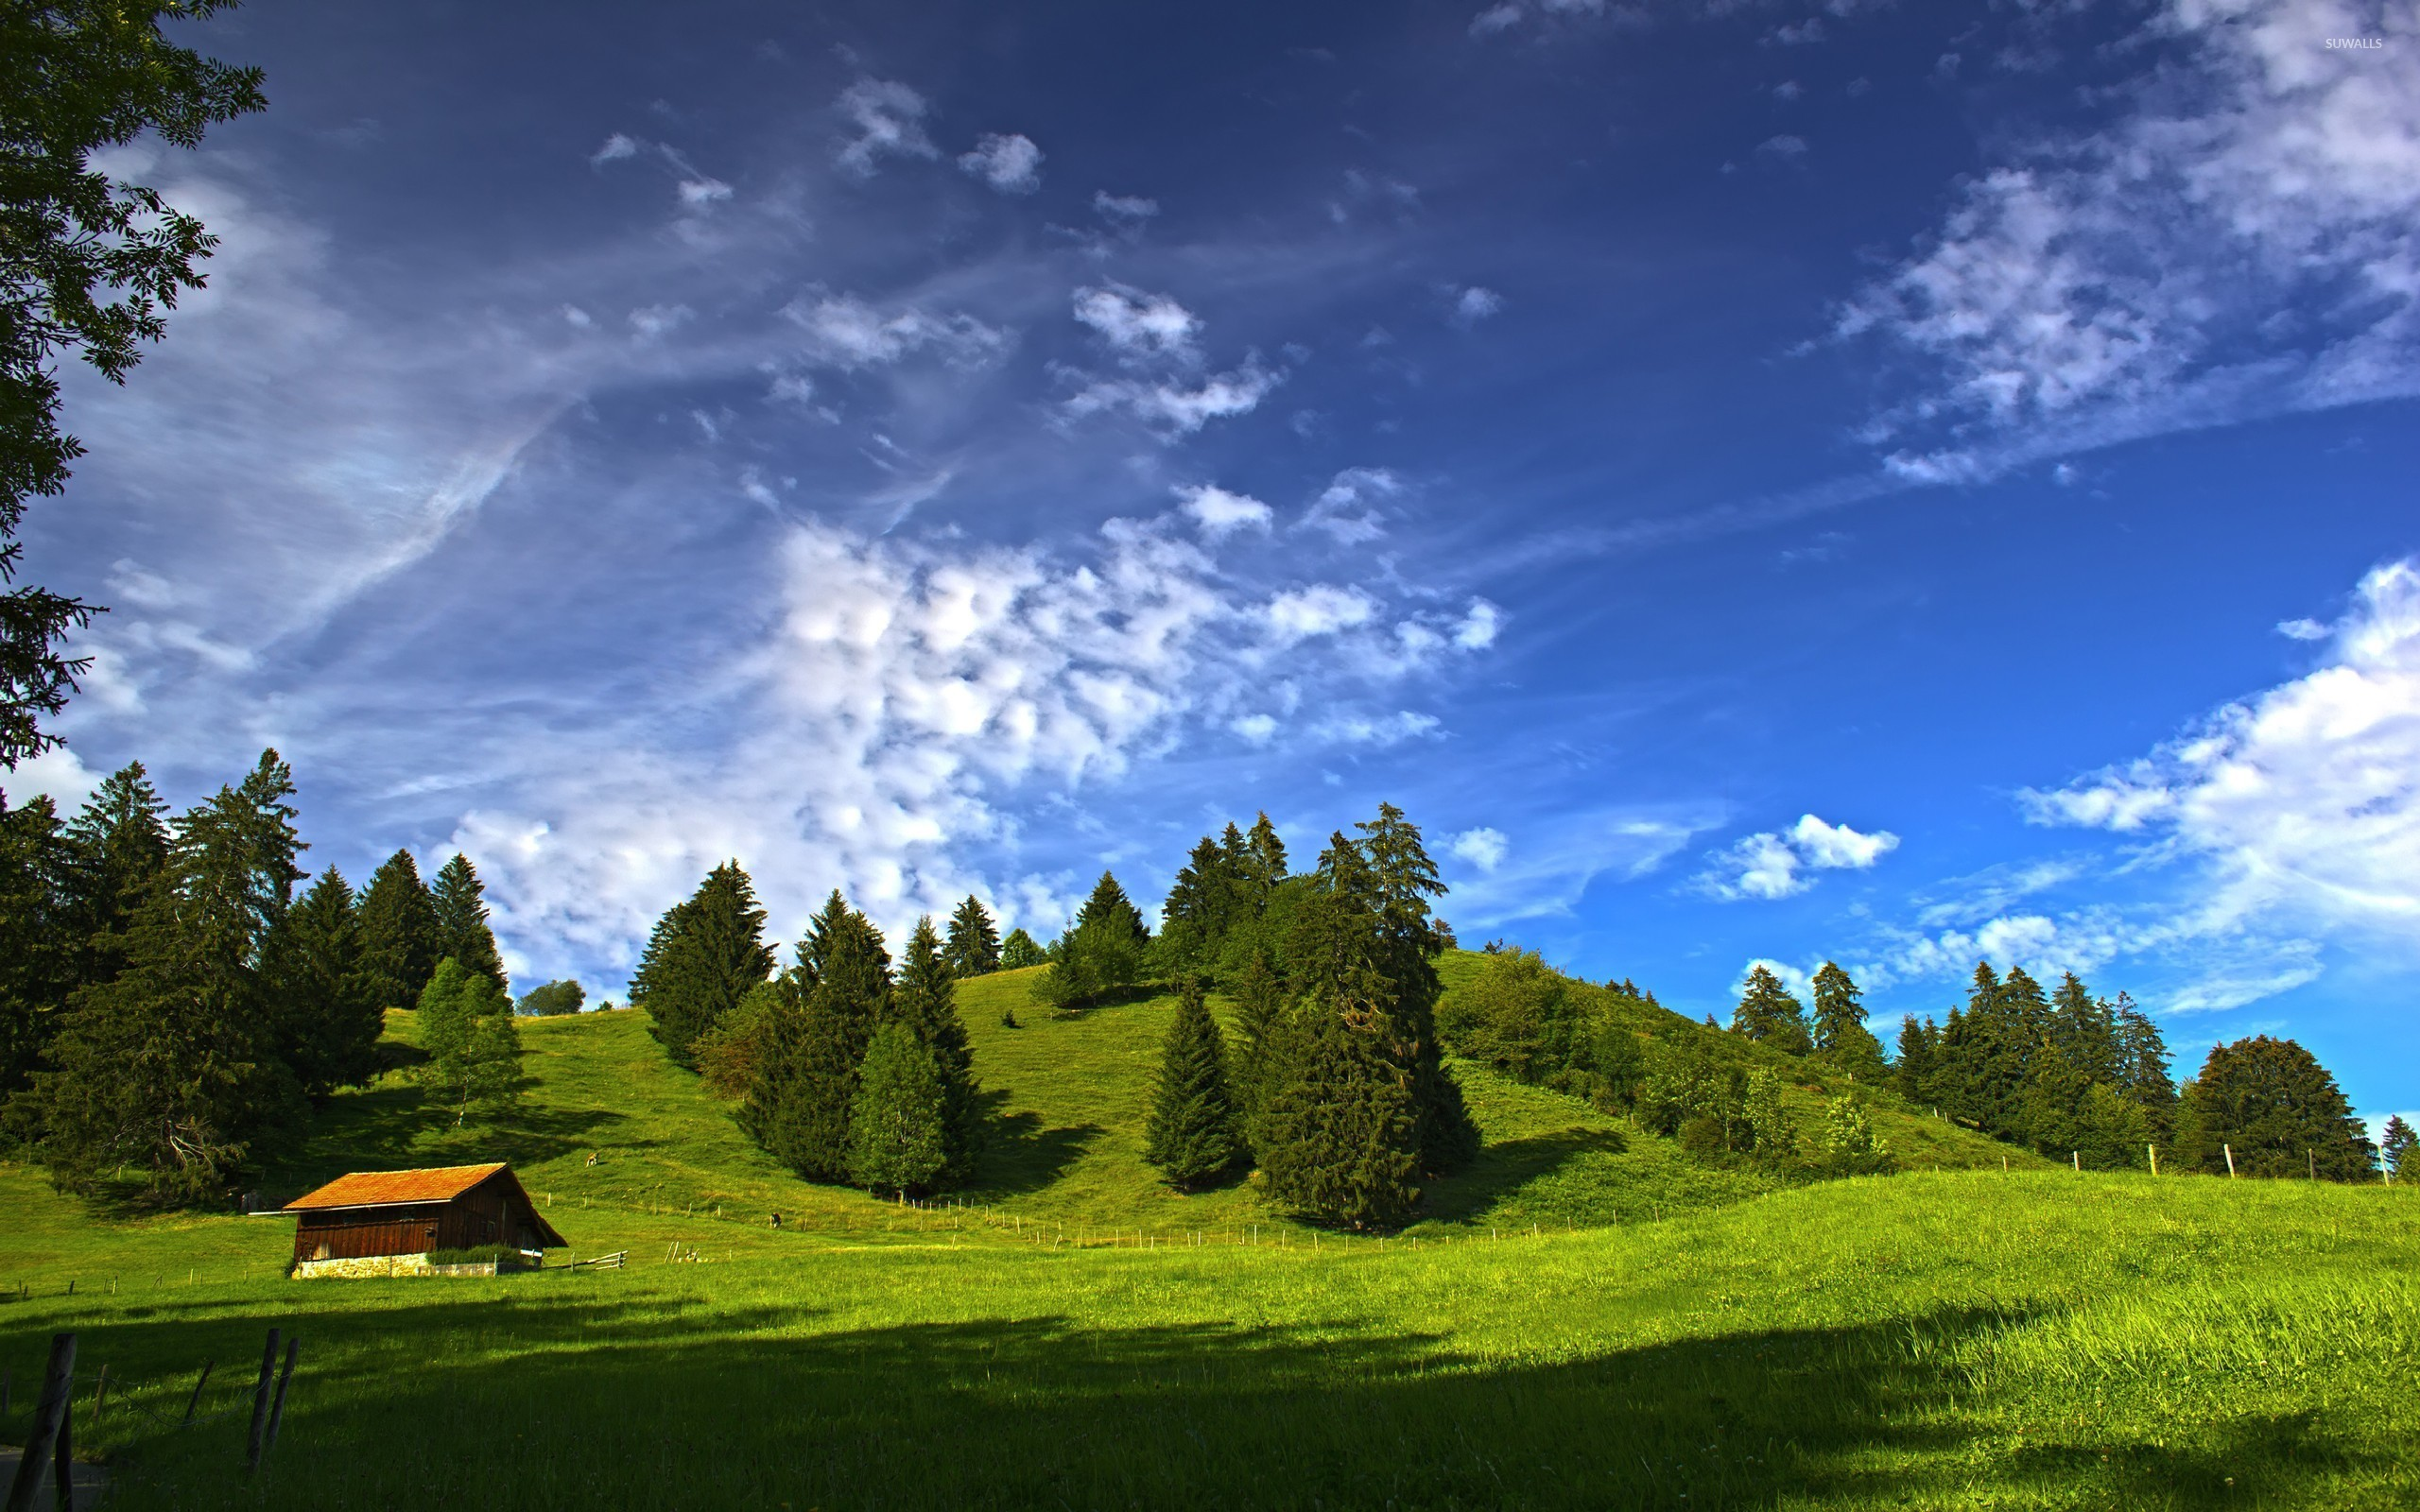 Sunny Day Background (38+ images)